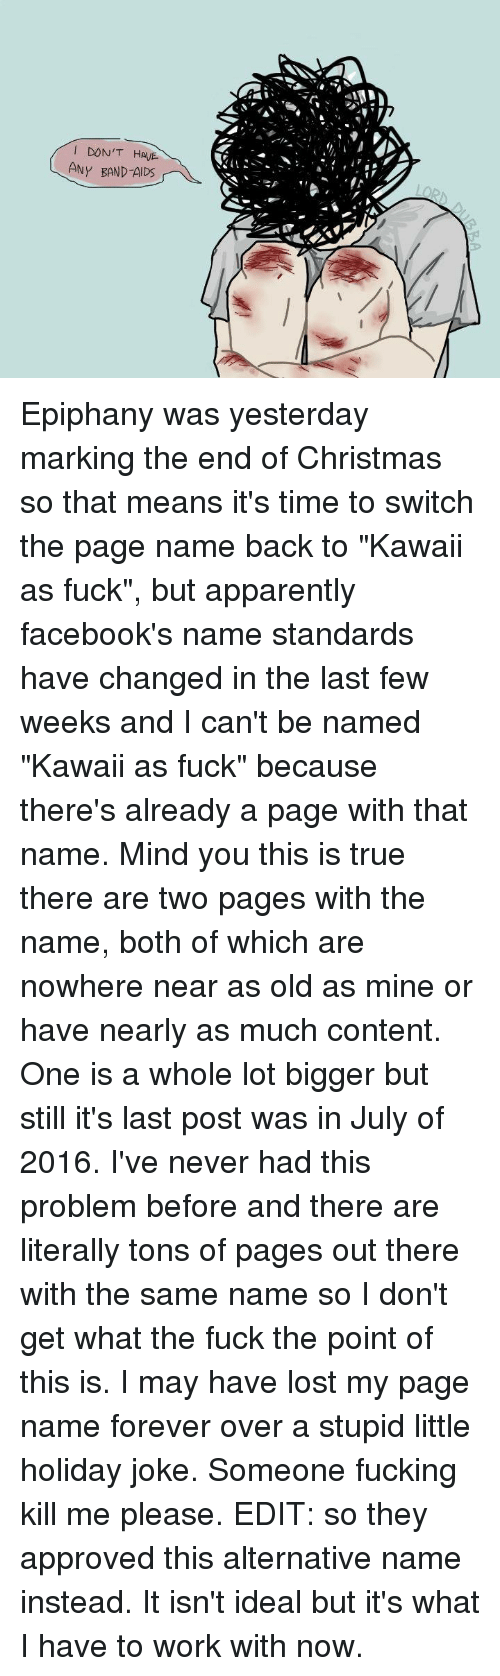 """Apparently, Dank, and Epiphany: DON'T HAUE  ANY BAND-AIDS Epiphany was yesterday marking the end of Christmas so that means it's time to switch the page name back to """"Kawaii as fuck"""", but apparently facebook's name standards have changed in the last few weeks and I can't be named """"Kawaii as fuck"""" because there's already a page with that name. Mind you this is true there are two pages with the name, both of which are nowhere near as old as mine or have nearly as much content. One is a whole lot bigger but still it's last post was in July of 2016. I've never had this problem before and there are literally tons of pages out there with the same name so I don't get what the fuck the point of this is. I may have lost my page name forever over a stupid little holiday joke. Someone fucking kill me please.  EDIT: so they approved this alternative name instead. It isn't ideal but it's what I have to work with now."""